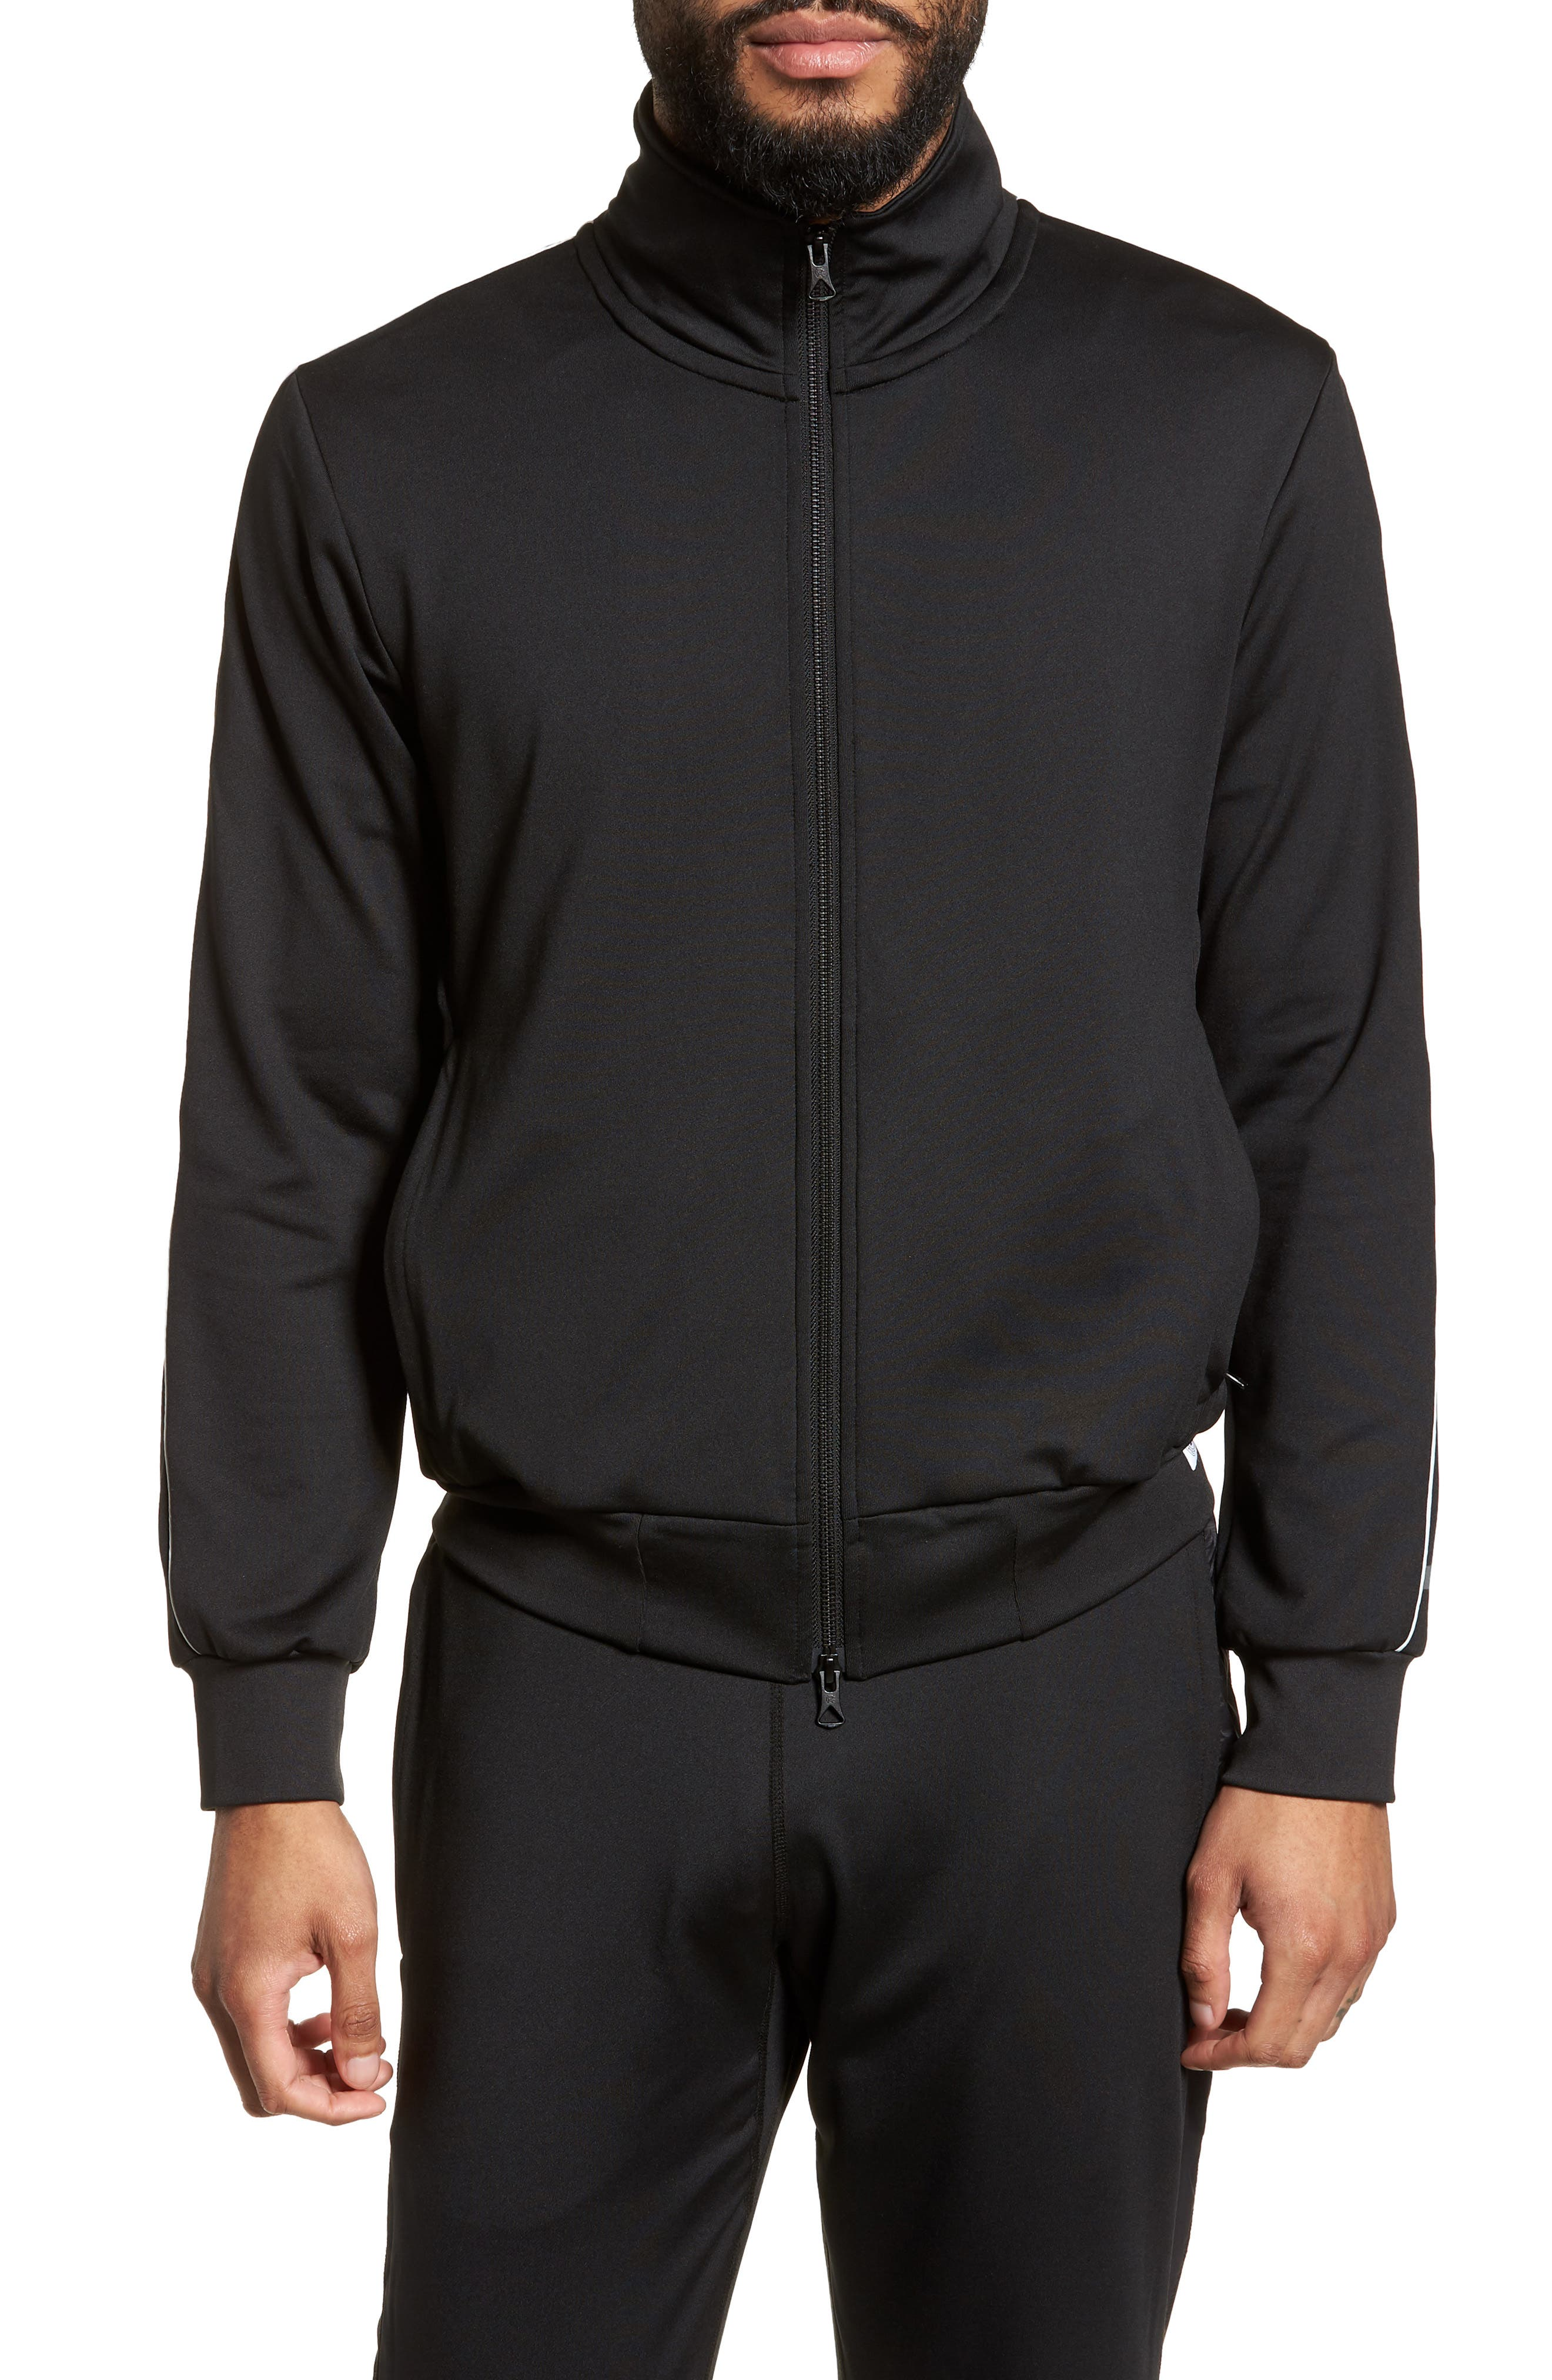 CoolMax<sup>®</sup> Track Jacket,                         Main,                         color, 001